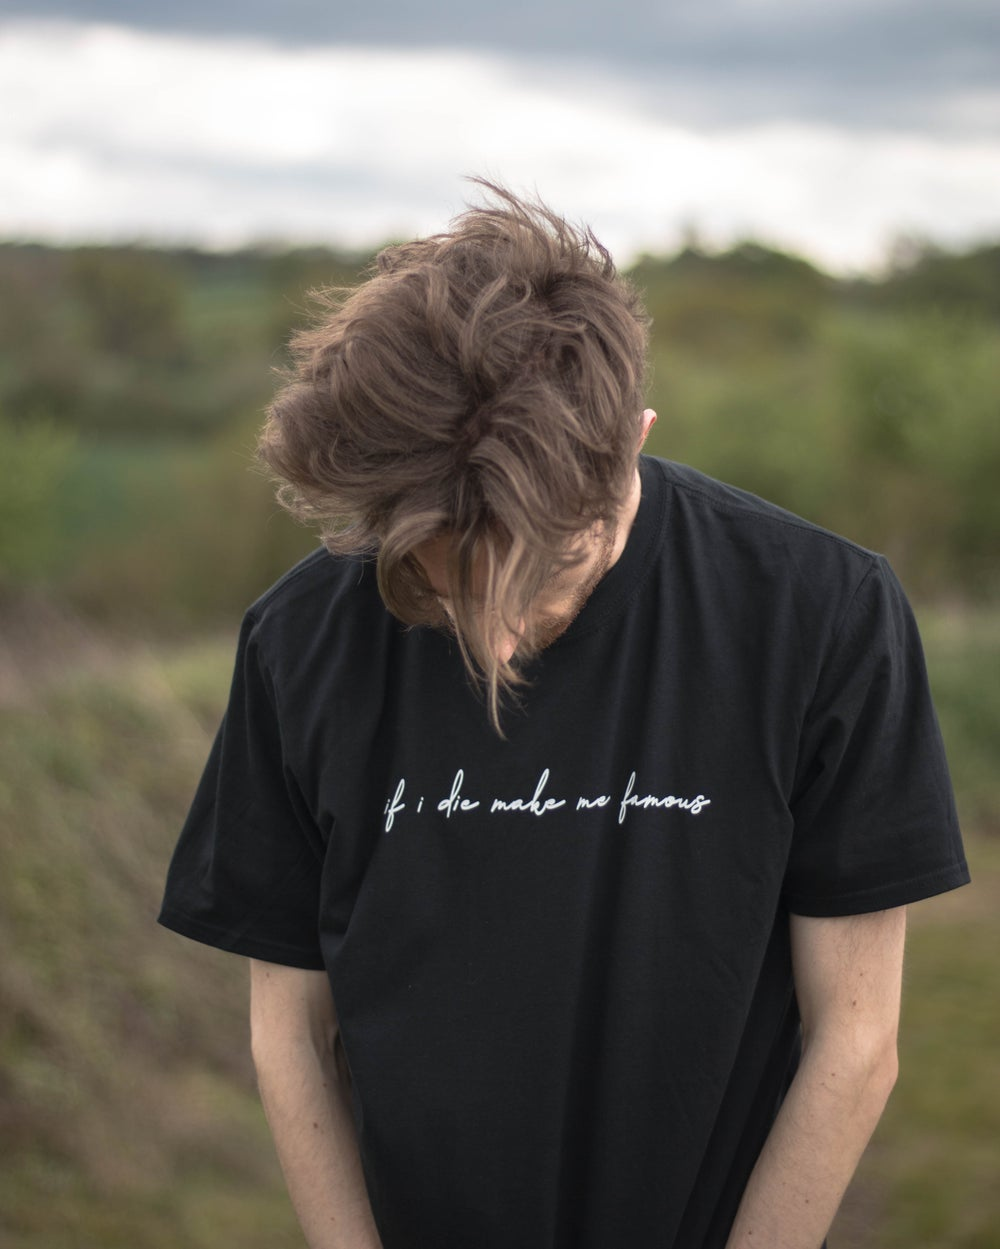 Image of 'if i die make me famous' shirt